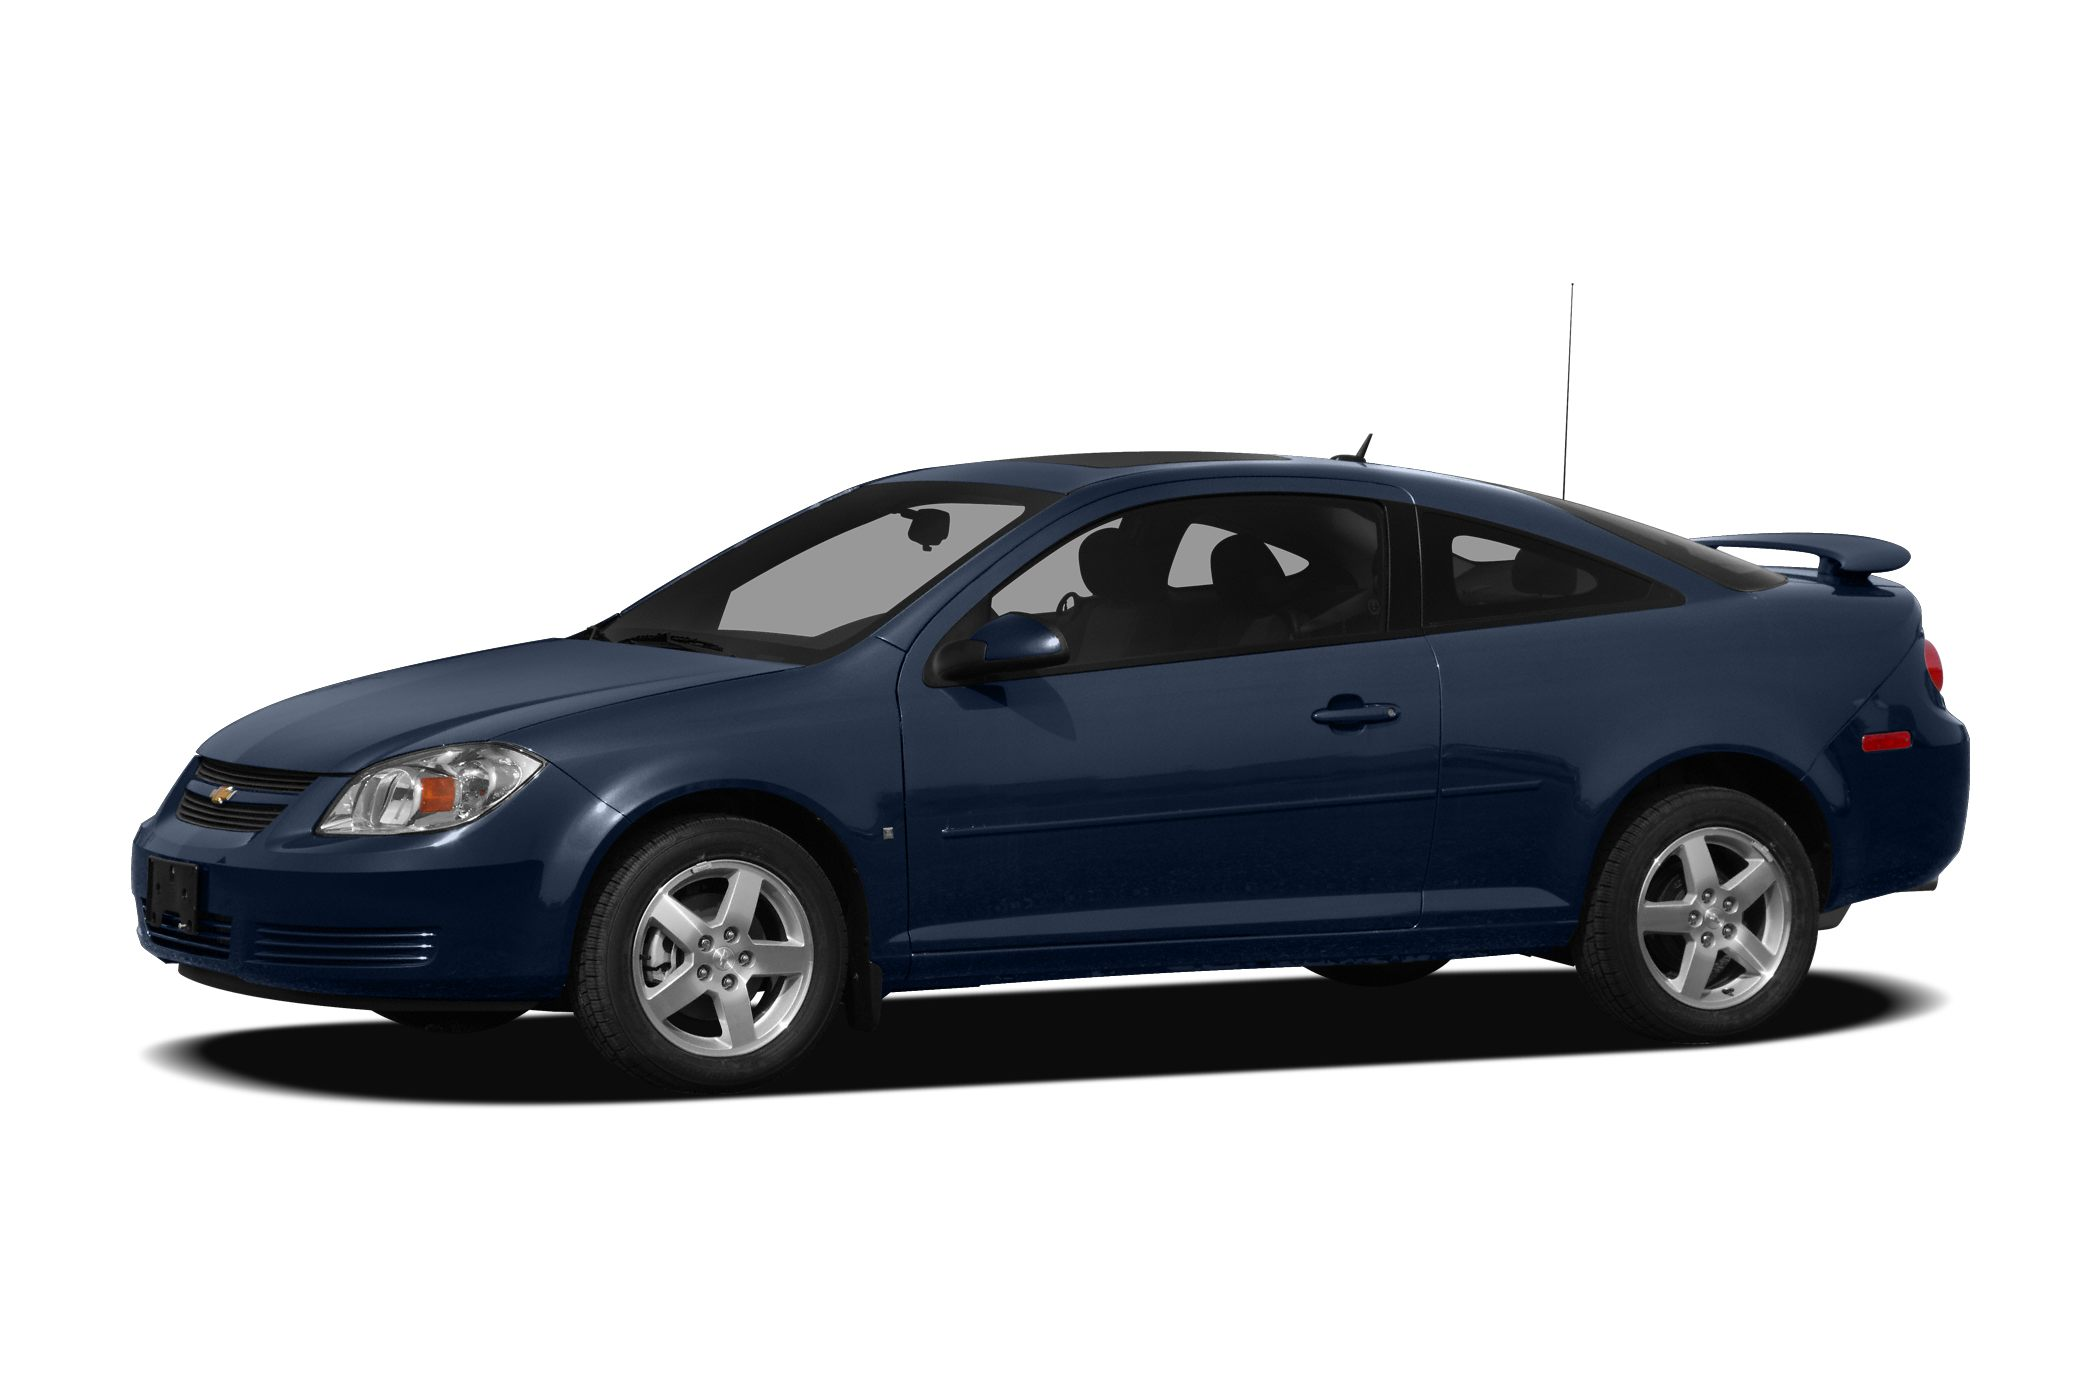 2010 Chevrolet Cobalt LT Coupe for sale in Harriman for $9,990 with 69,644 miles.